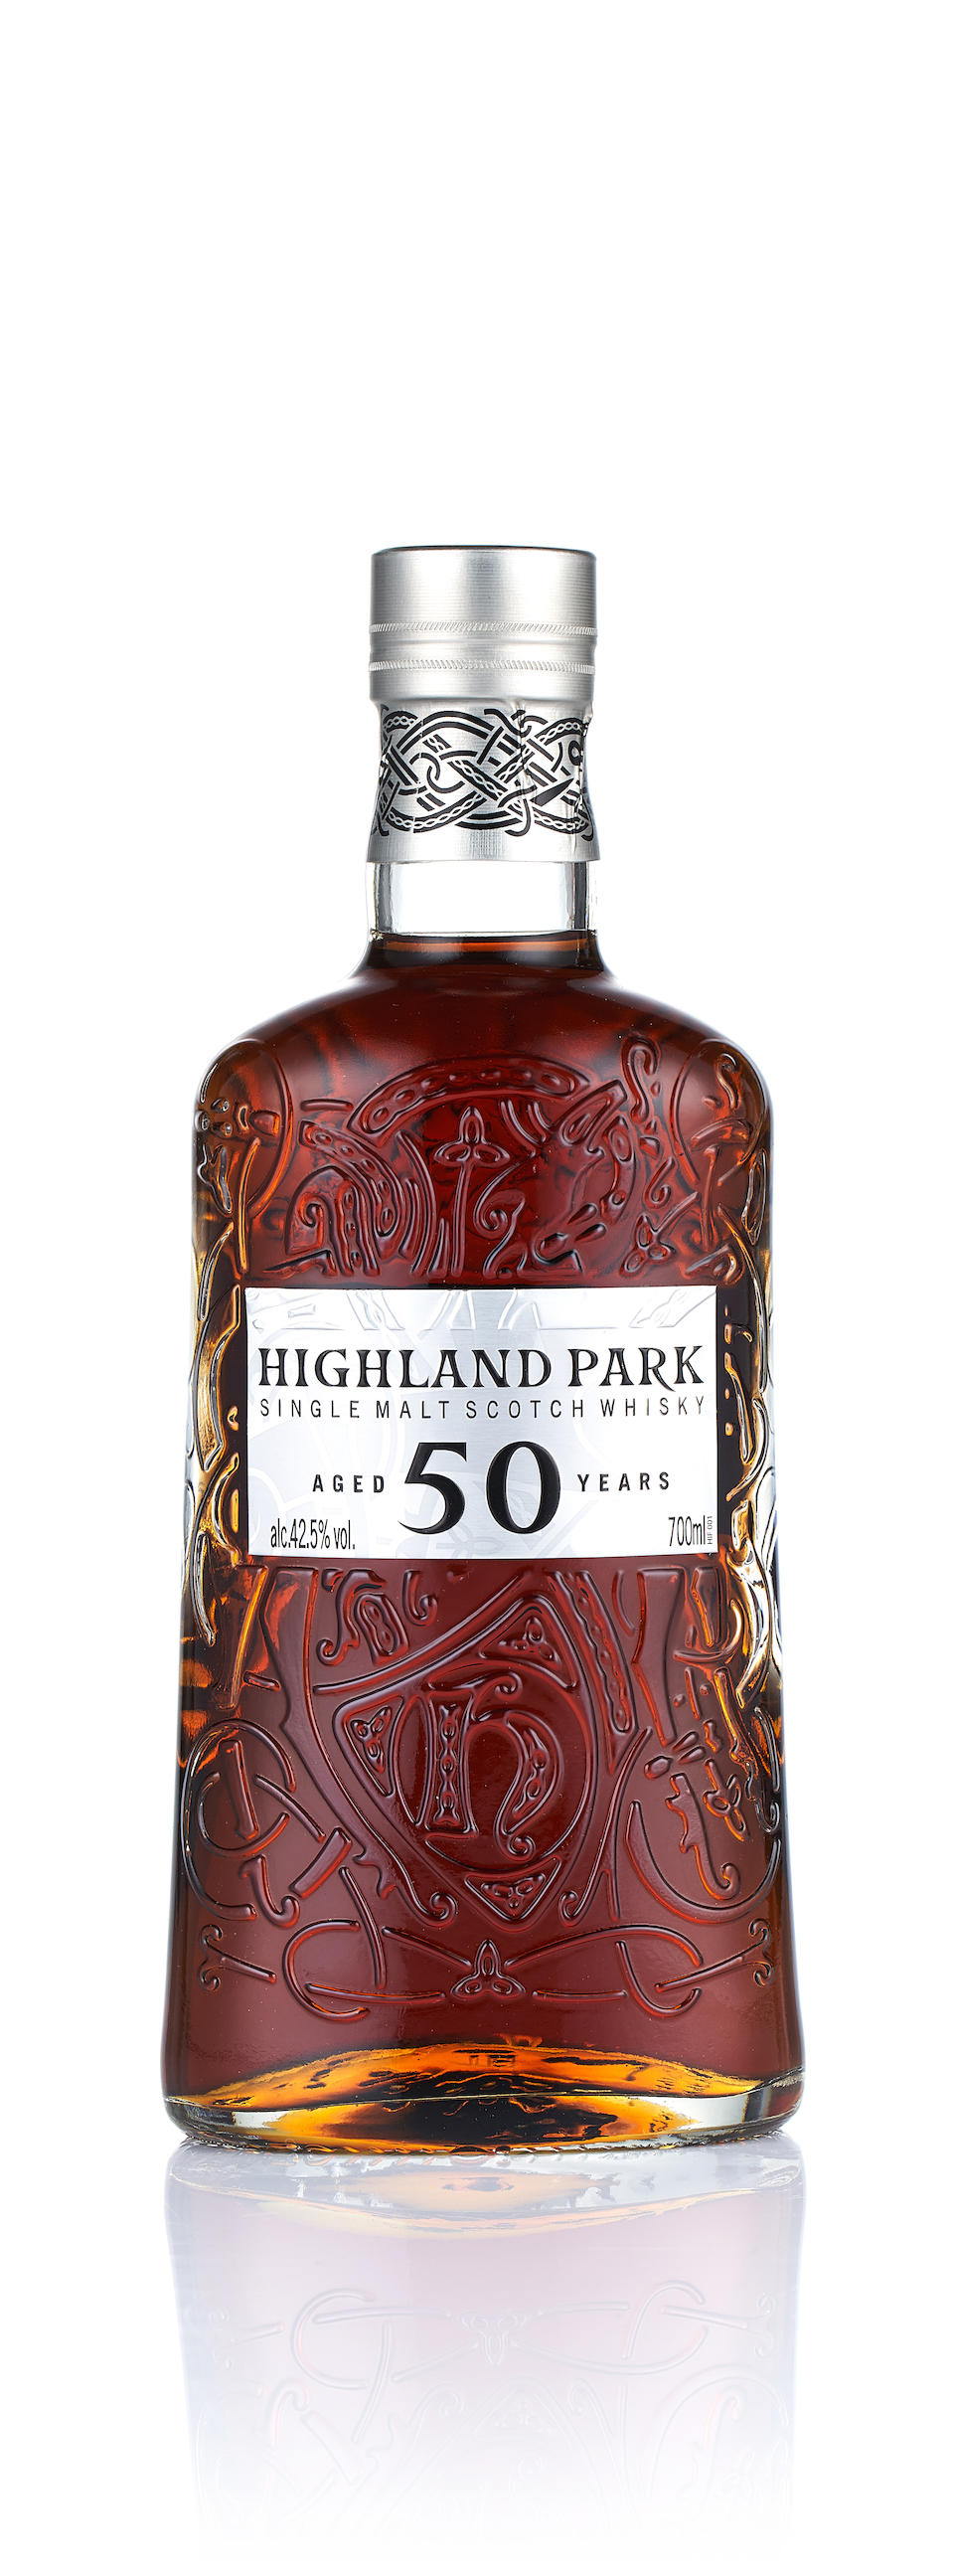 Highland Park-50 year old